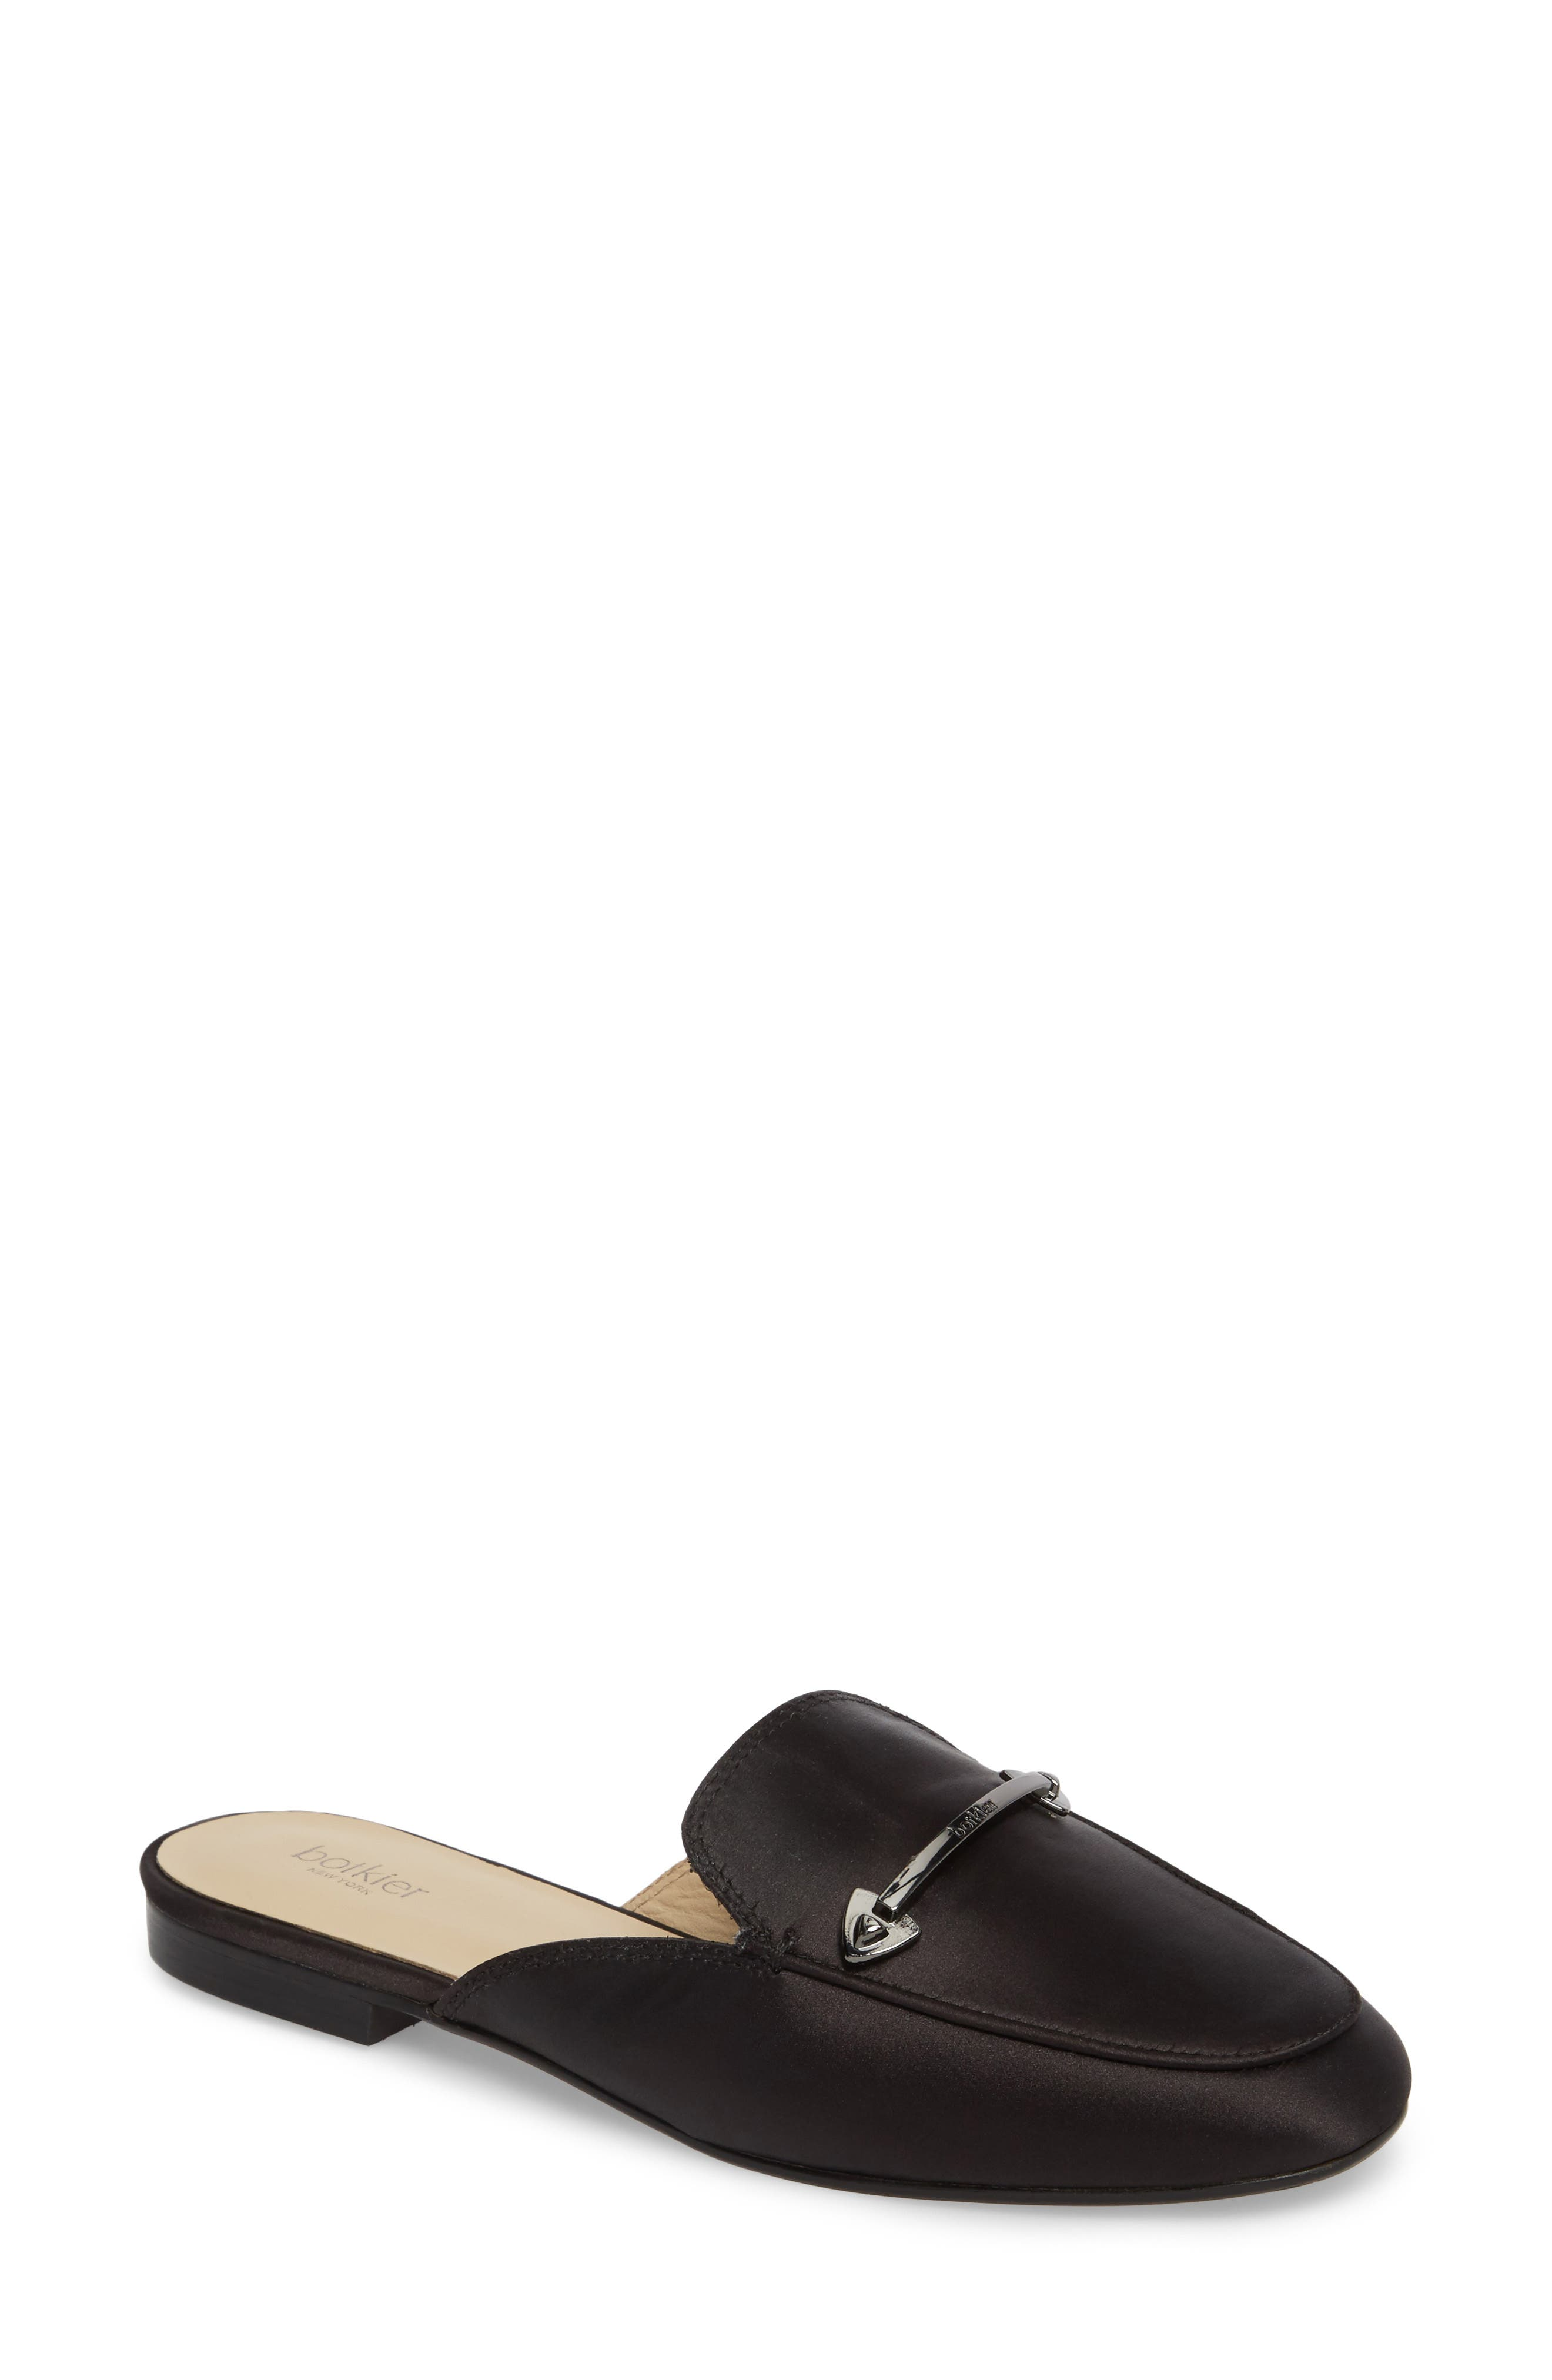 Clare Loafer Mule,                         Main,                         color, 003